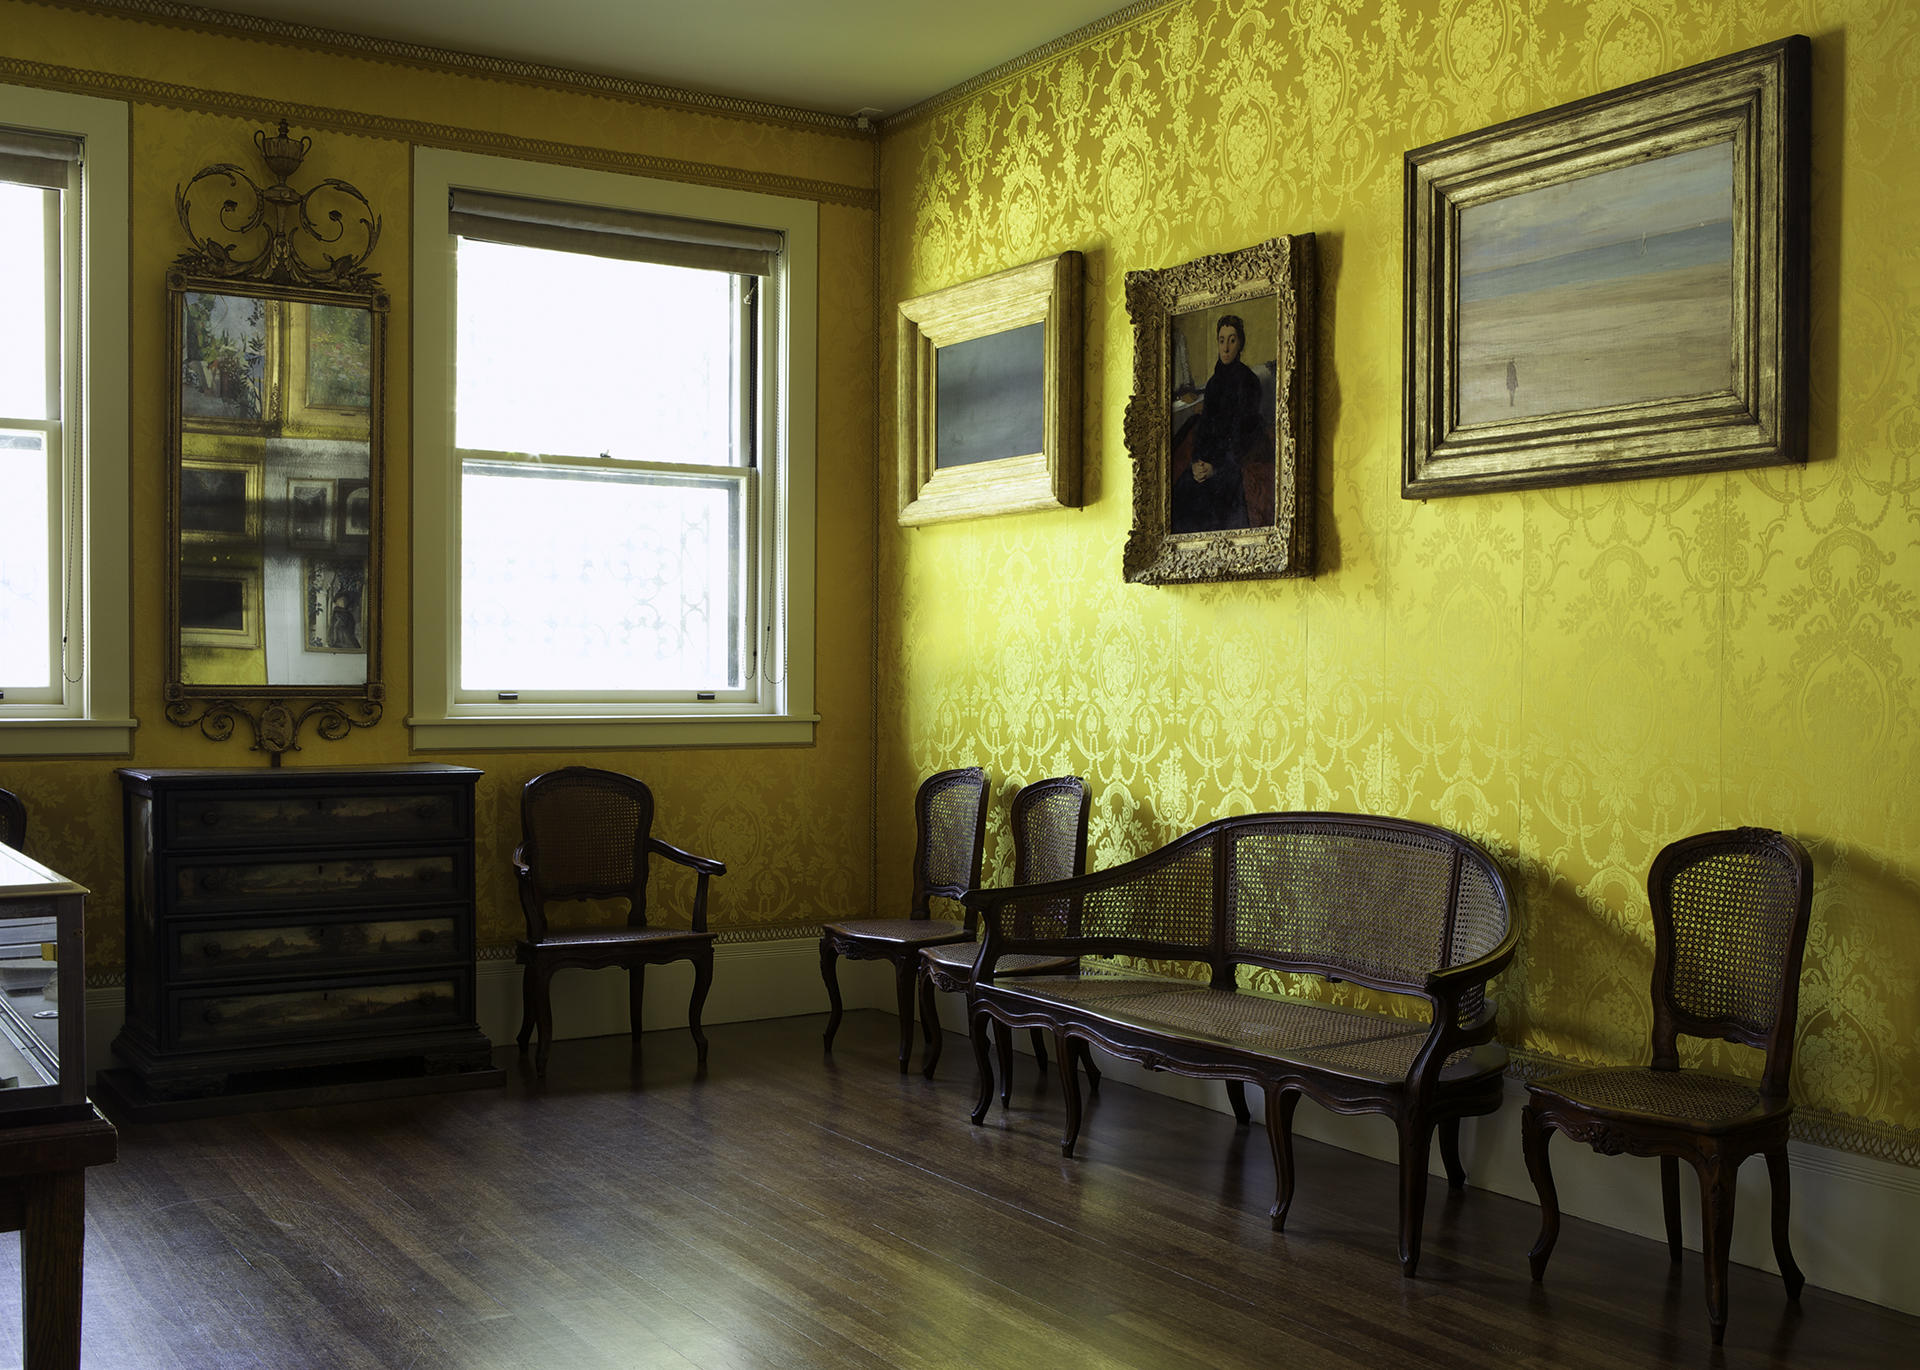 Italian, Parma, Caned Furniture, 2nd half of the 18th century in the Yellow Room Photo: Sean Dungan